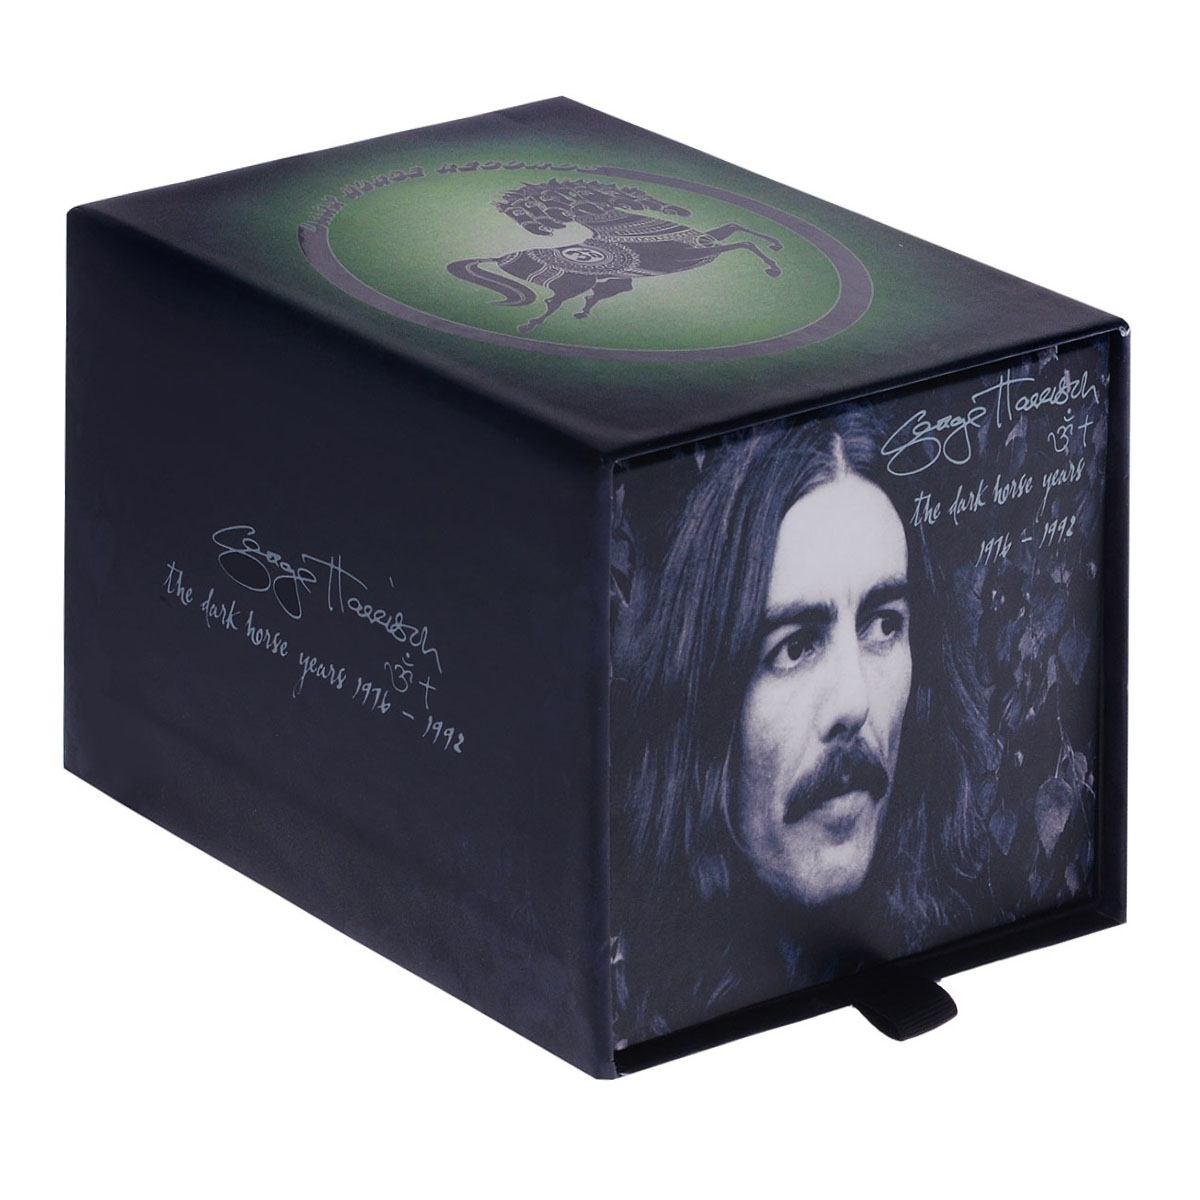 Джордж Харрисон George Harrison. The Dark Horse Years 1976-1992 (5 CD + 2 SACD + DVD) diana vreeland the modern woman the bazaar years 1936 1962